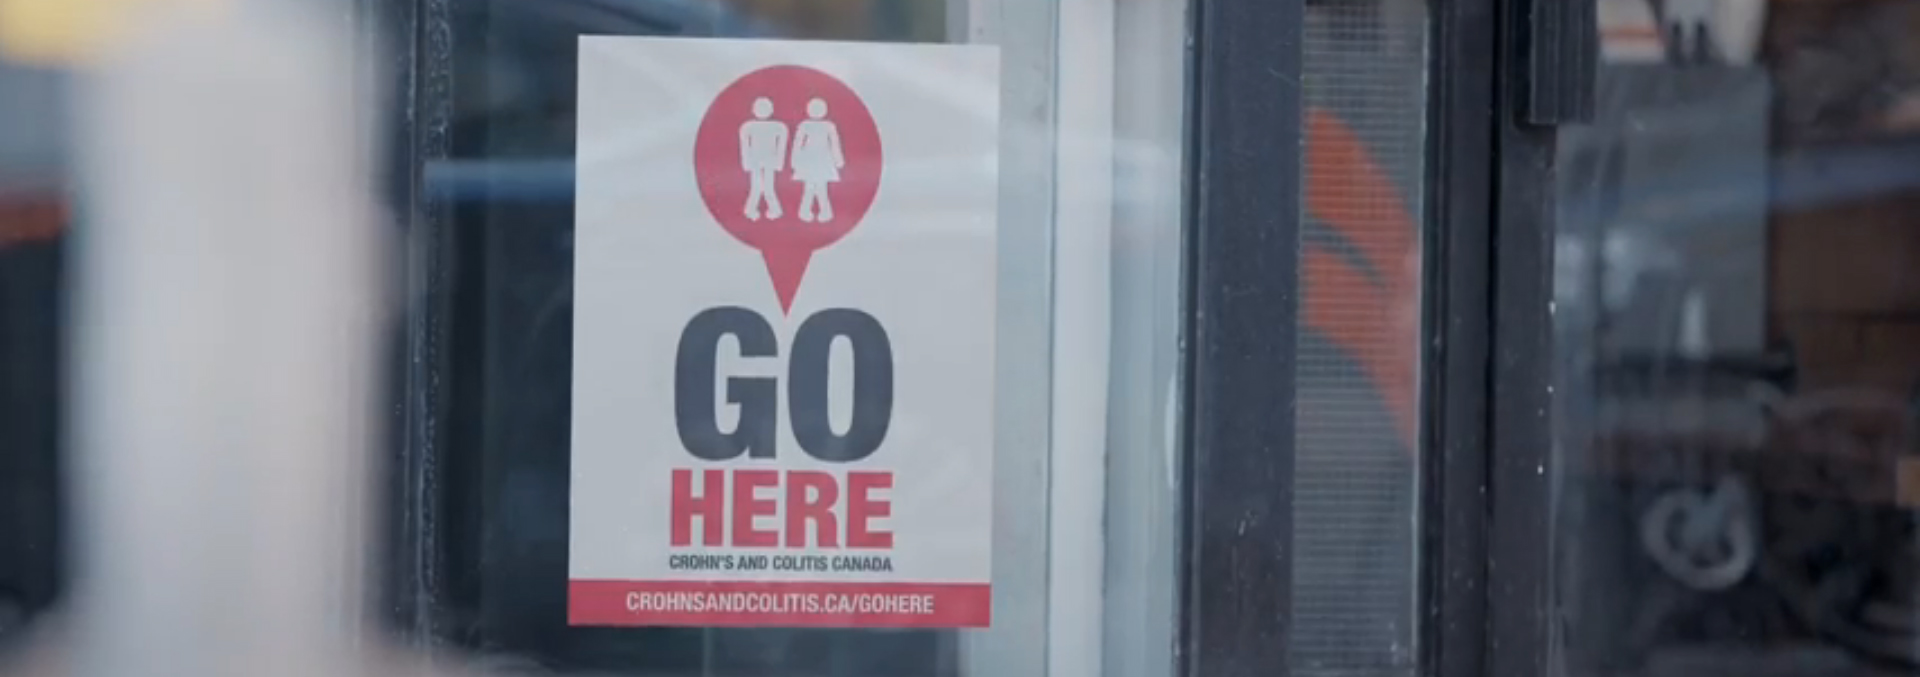 GoHere decal in store window